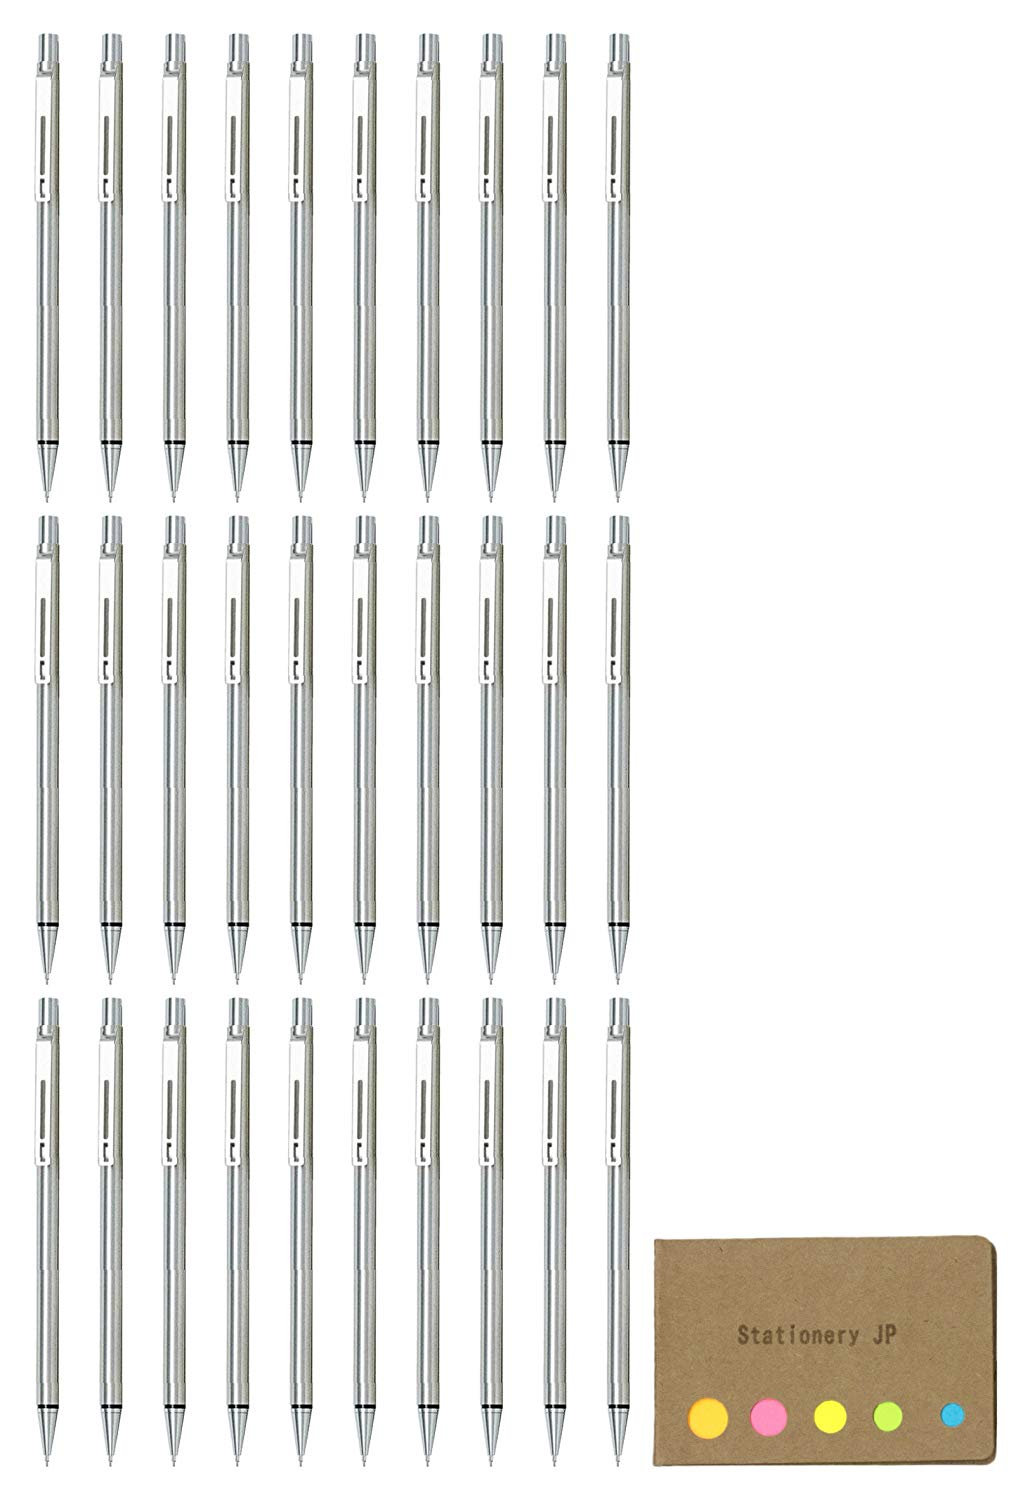 Pilot Birdy Stainless Steel Body Mini Mechanical Pencil 0.5 mm, 30-pack, Sticky Notes Value Set